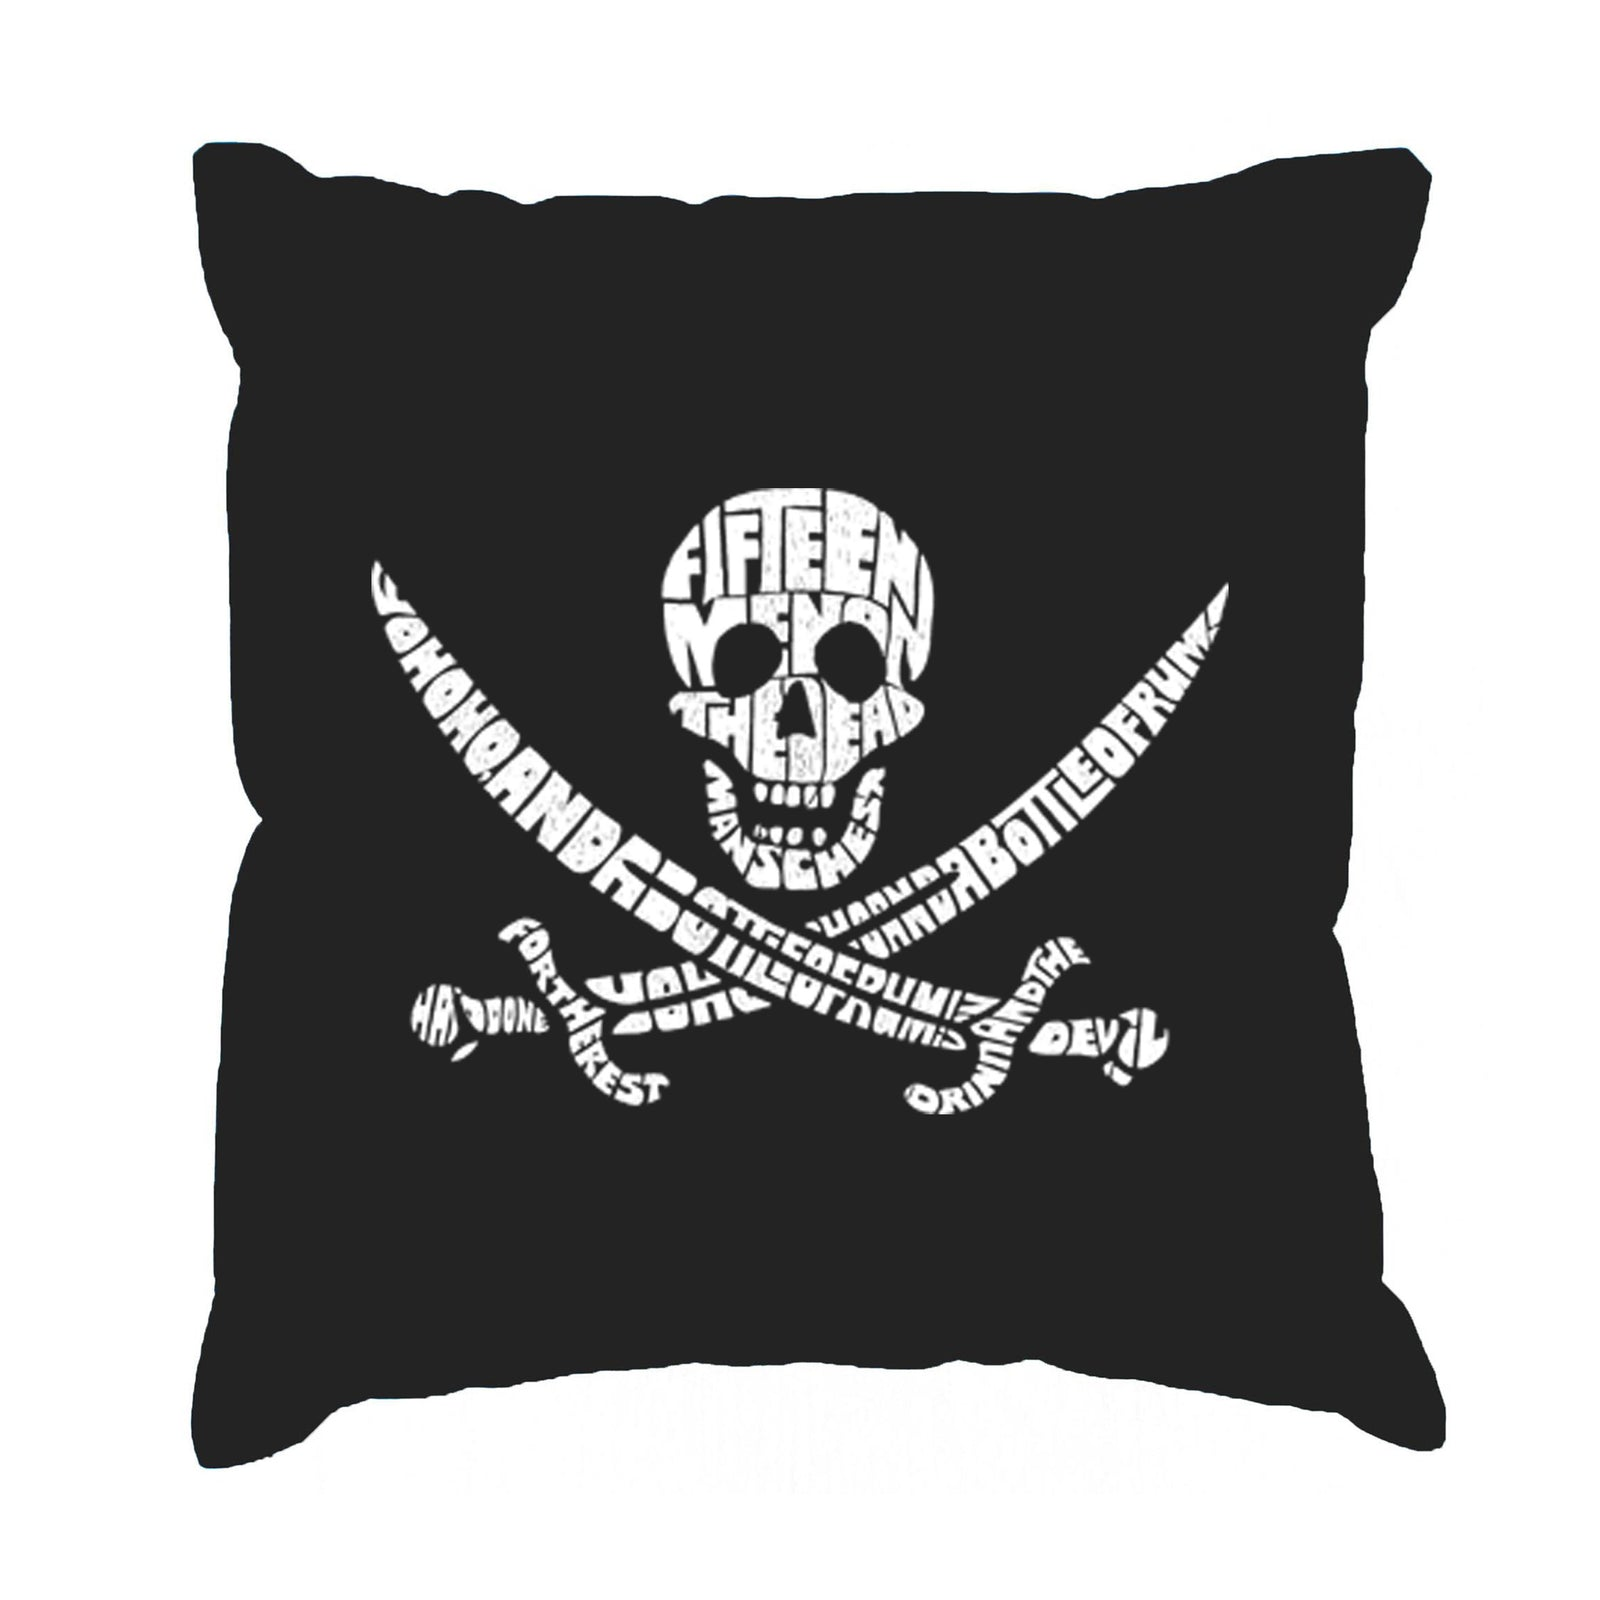 Throw Pillow Cover - Lyrics To A Legendary Pirate Song